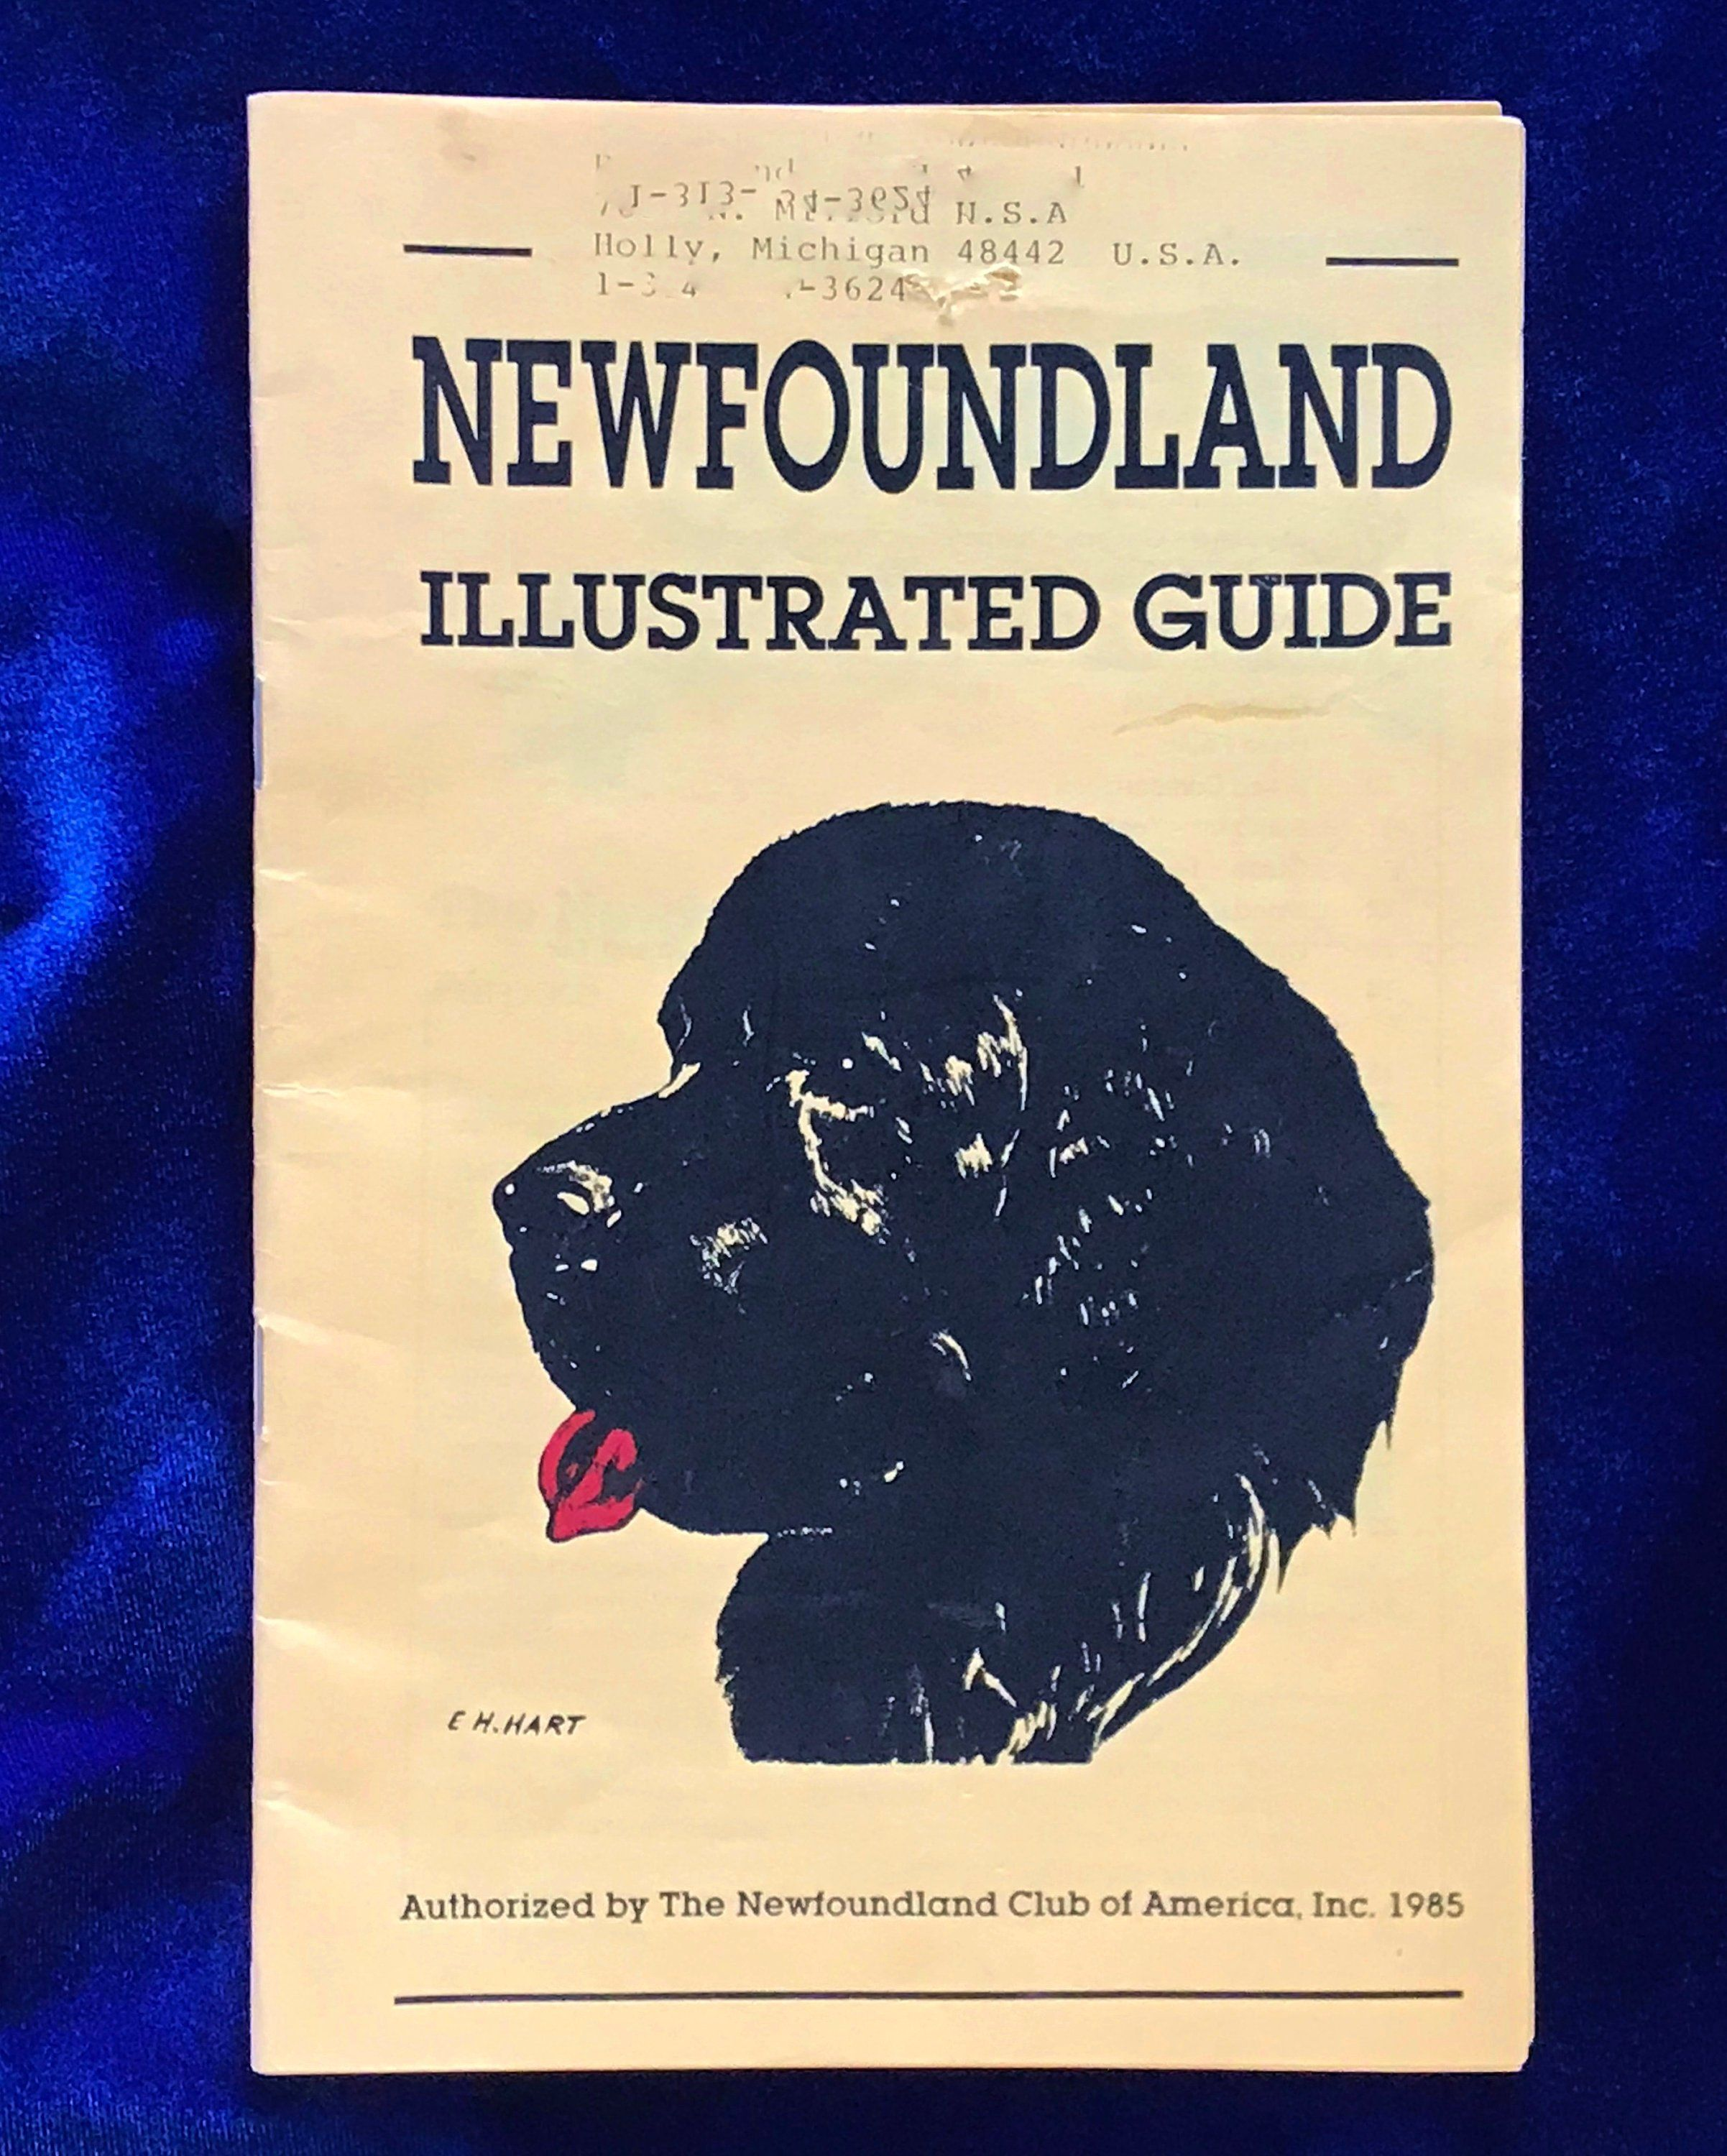 Newfoundland Illustrated Guide Dog Breed Booklet For Judges Breeders Layman 1985 For Sale At Yellow Dog Antiques On Etsy Guide Dog Dog Books Dog Breeds